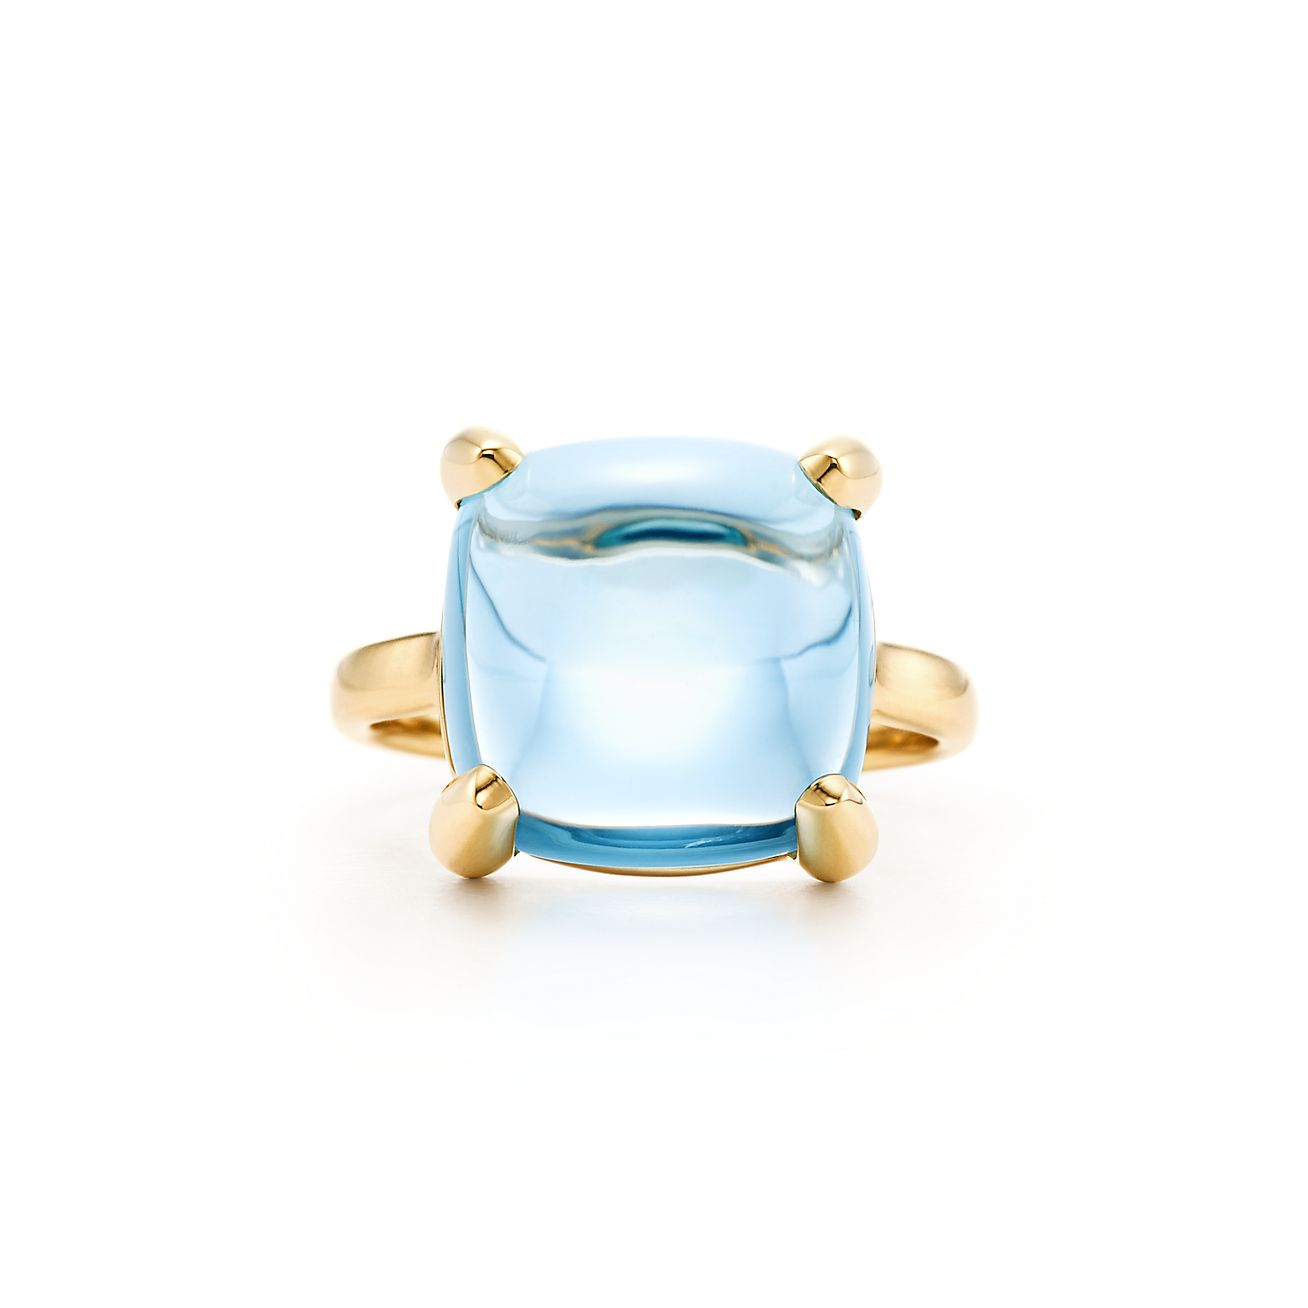 Palomas Sugar Stacks ring in 18k gold with a blue topaz - Size 7 Tiffany & Co.